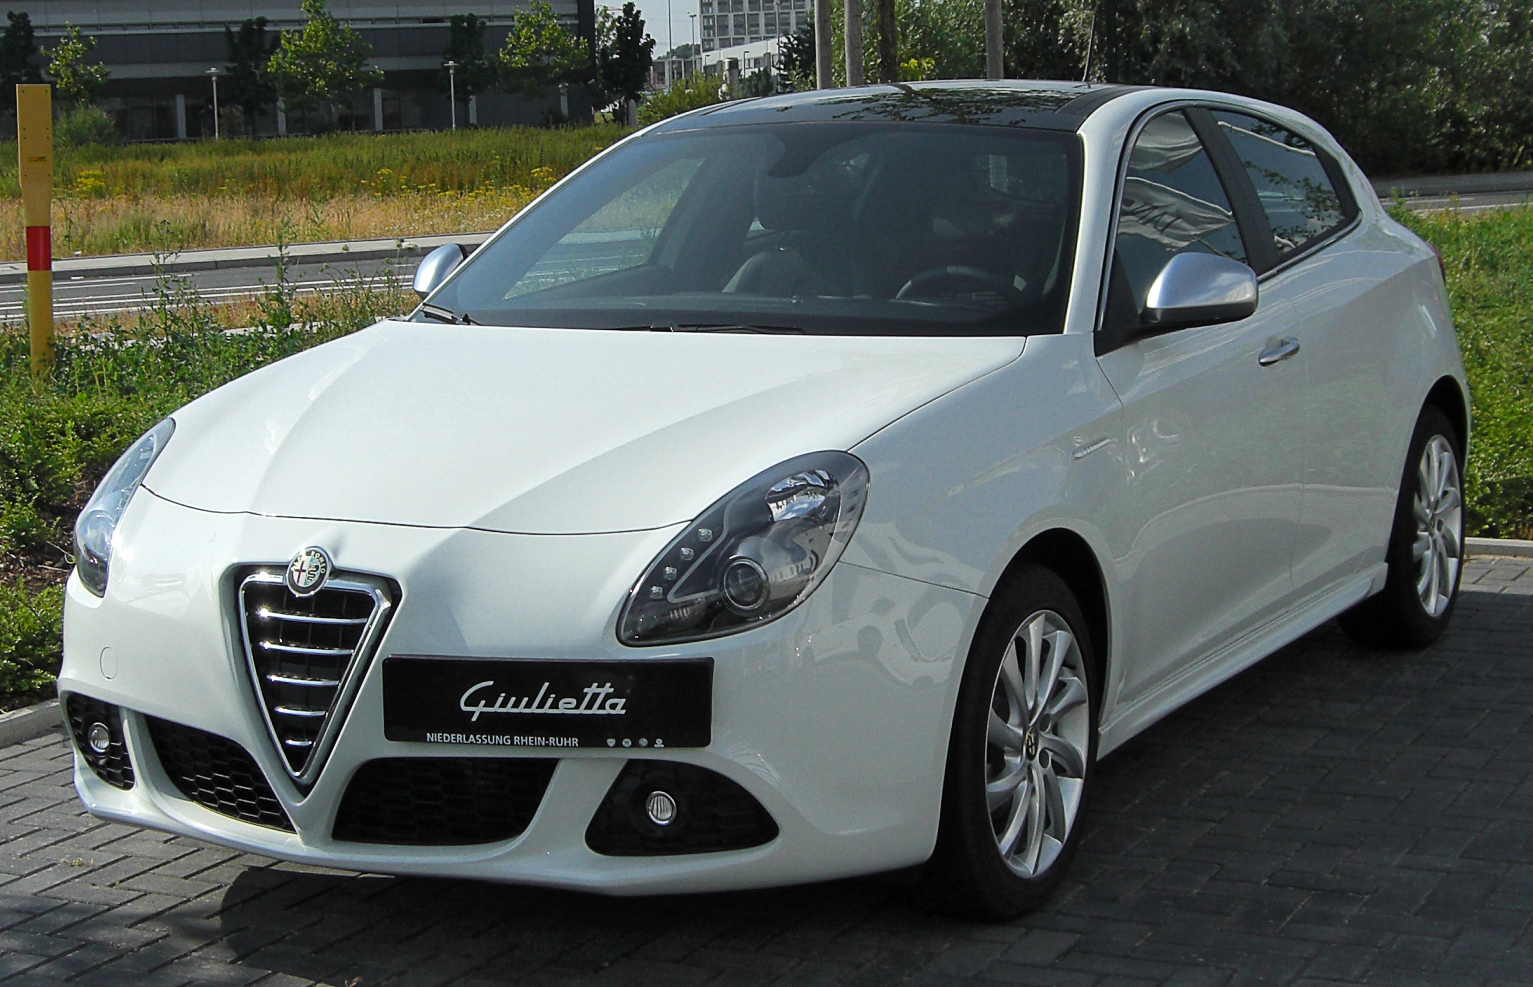 Permalink to Alfa Romeo Giulietta Car Reviews